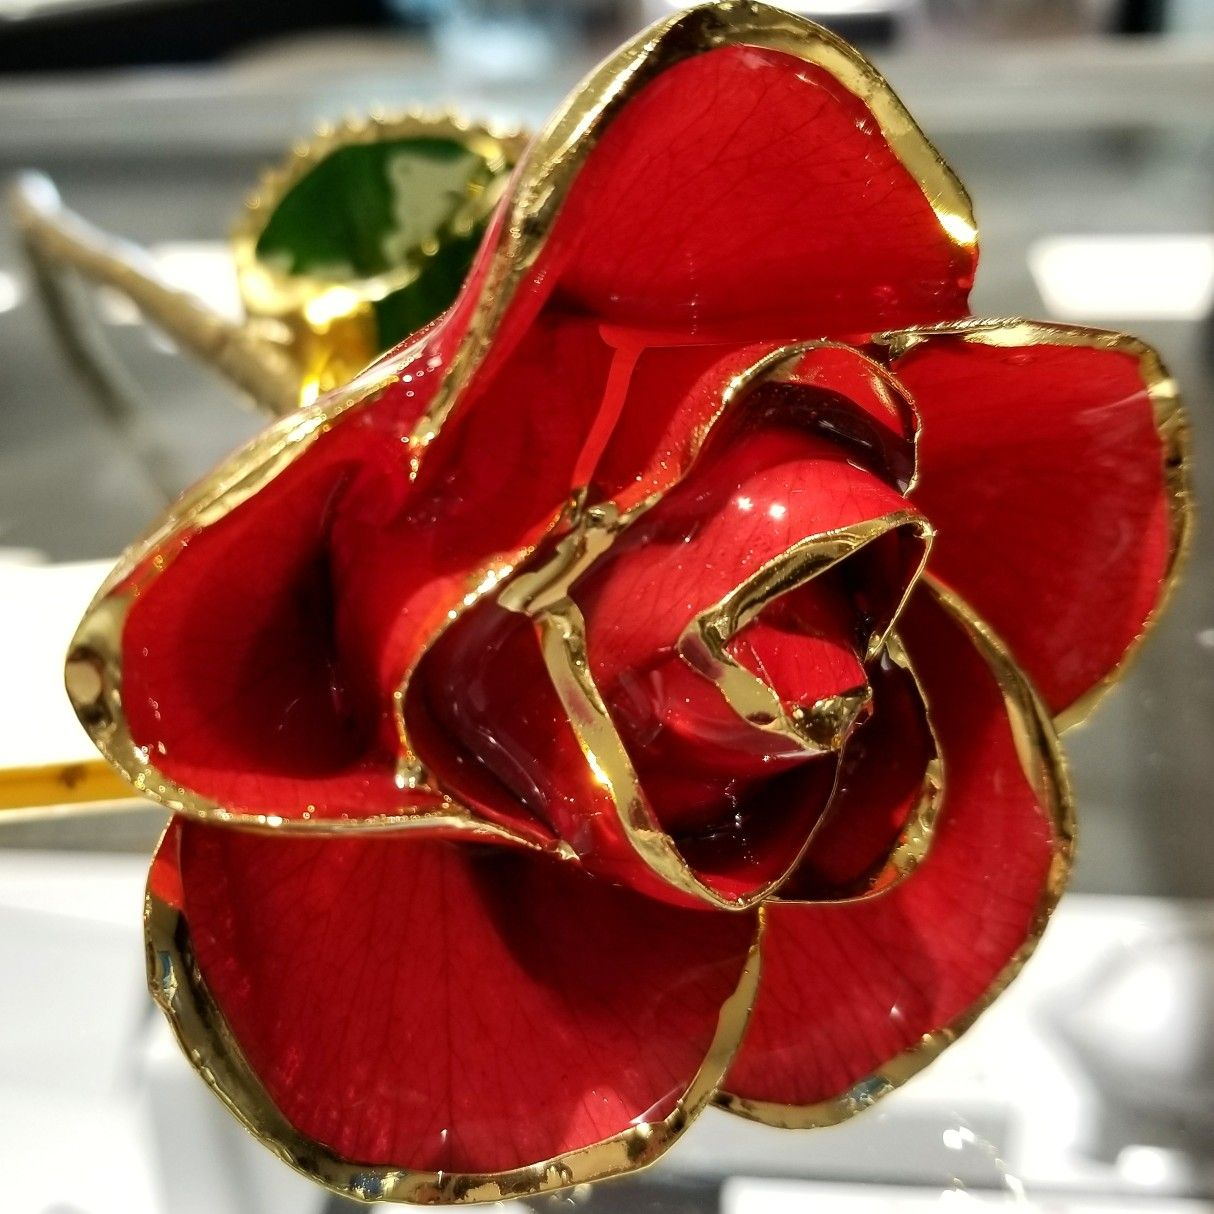 Northwood Jewelers Genuine 24k Gold Dipped Roses These Forever Last A Lifetime They Will Never Or Wilt Valentine S Day Special 89 00 For